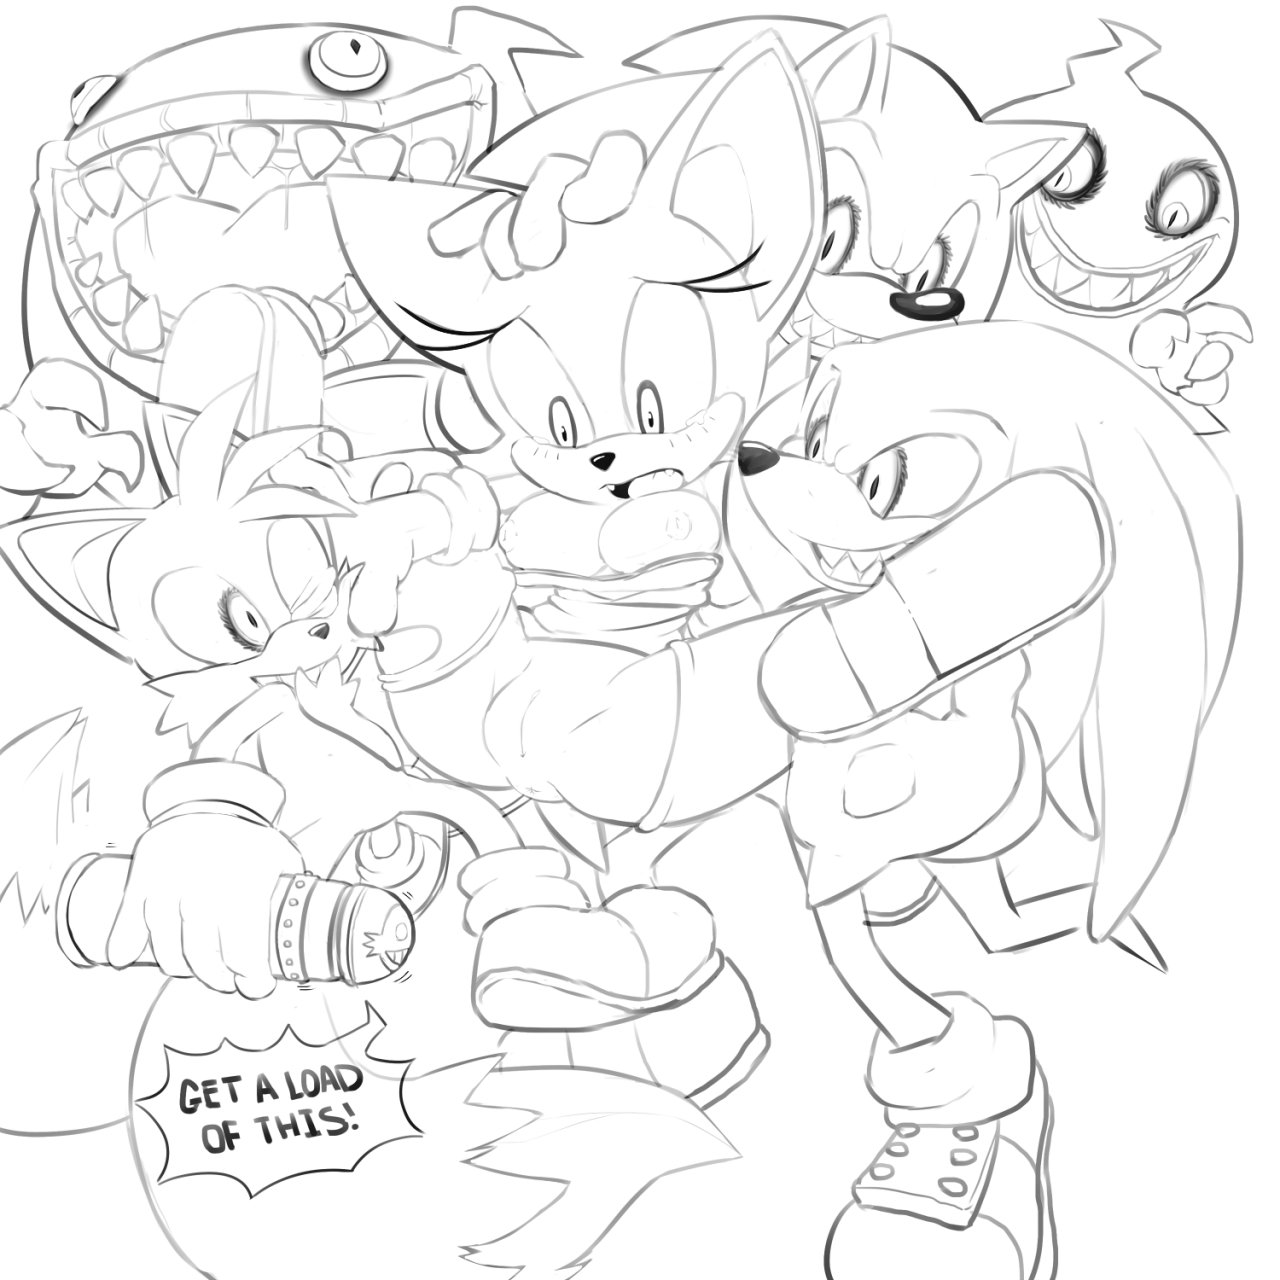 tails girl sonic a is from Dragon age inquisition cassandra hentai